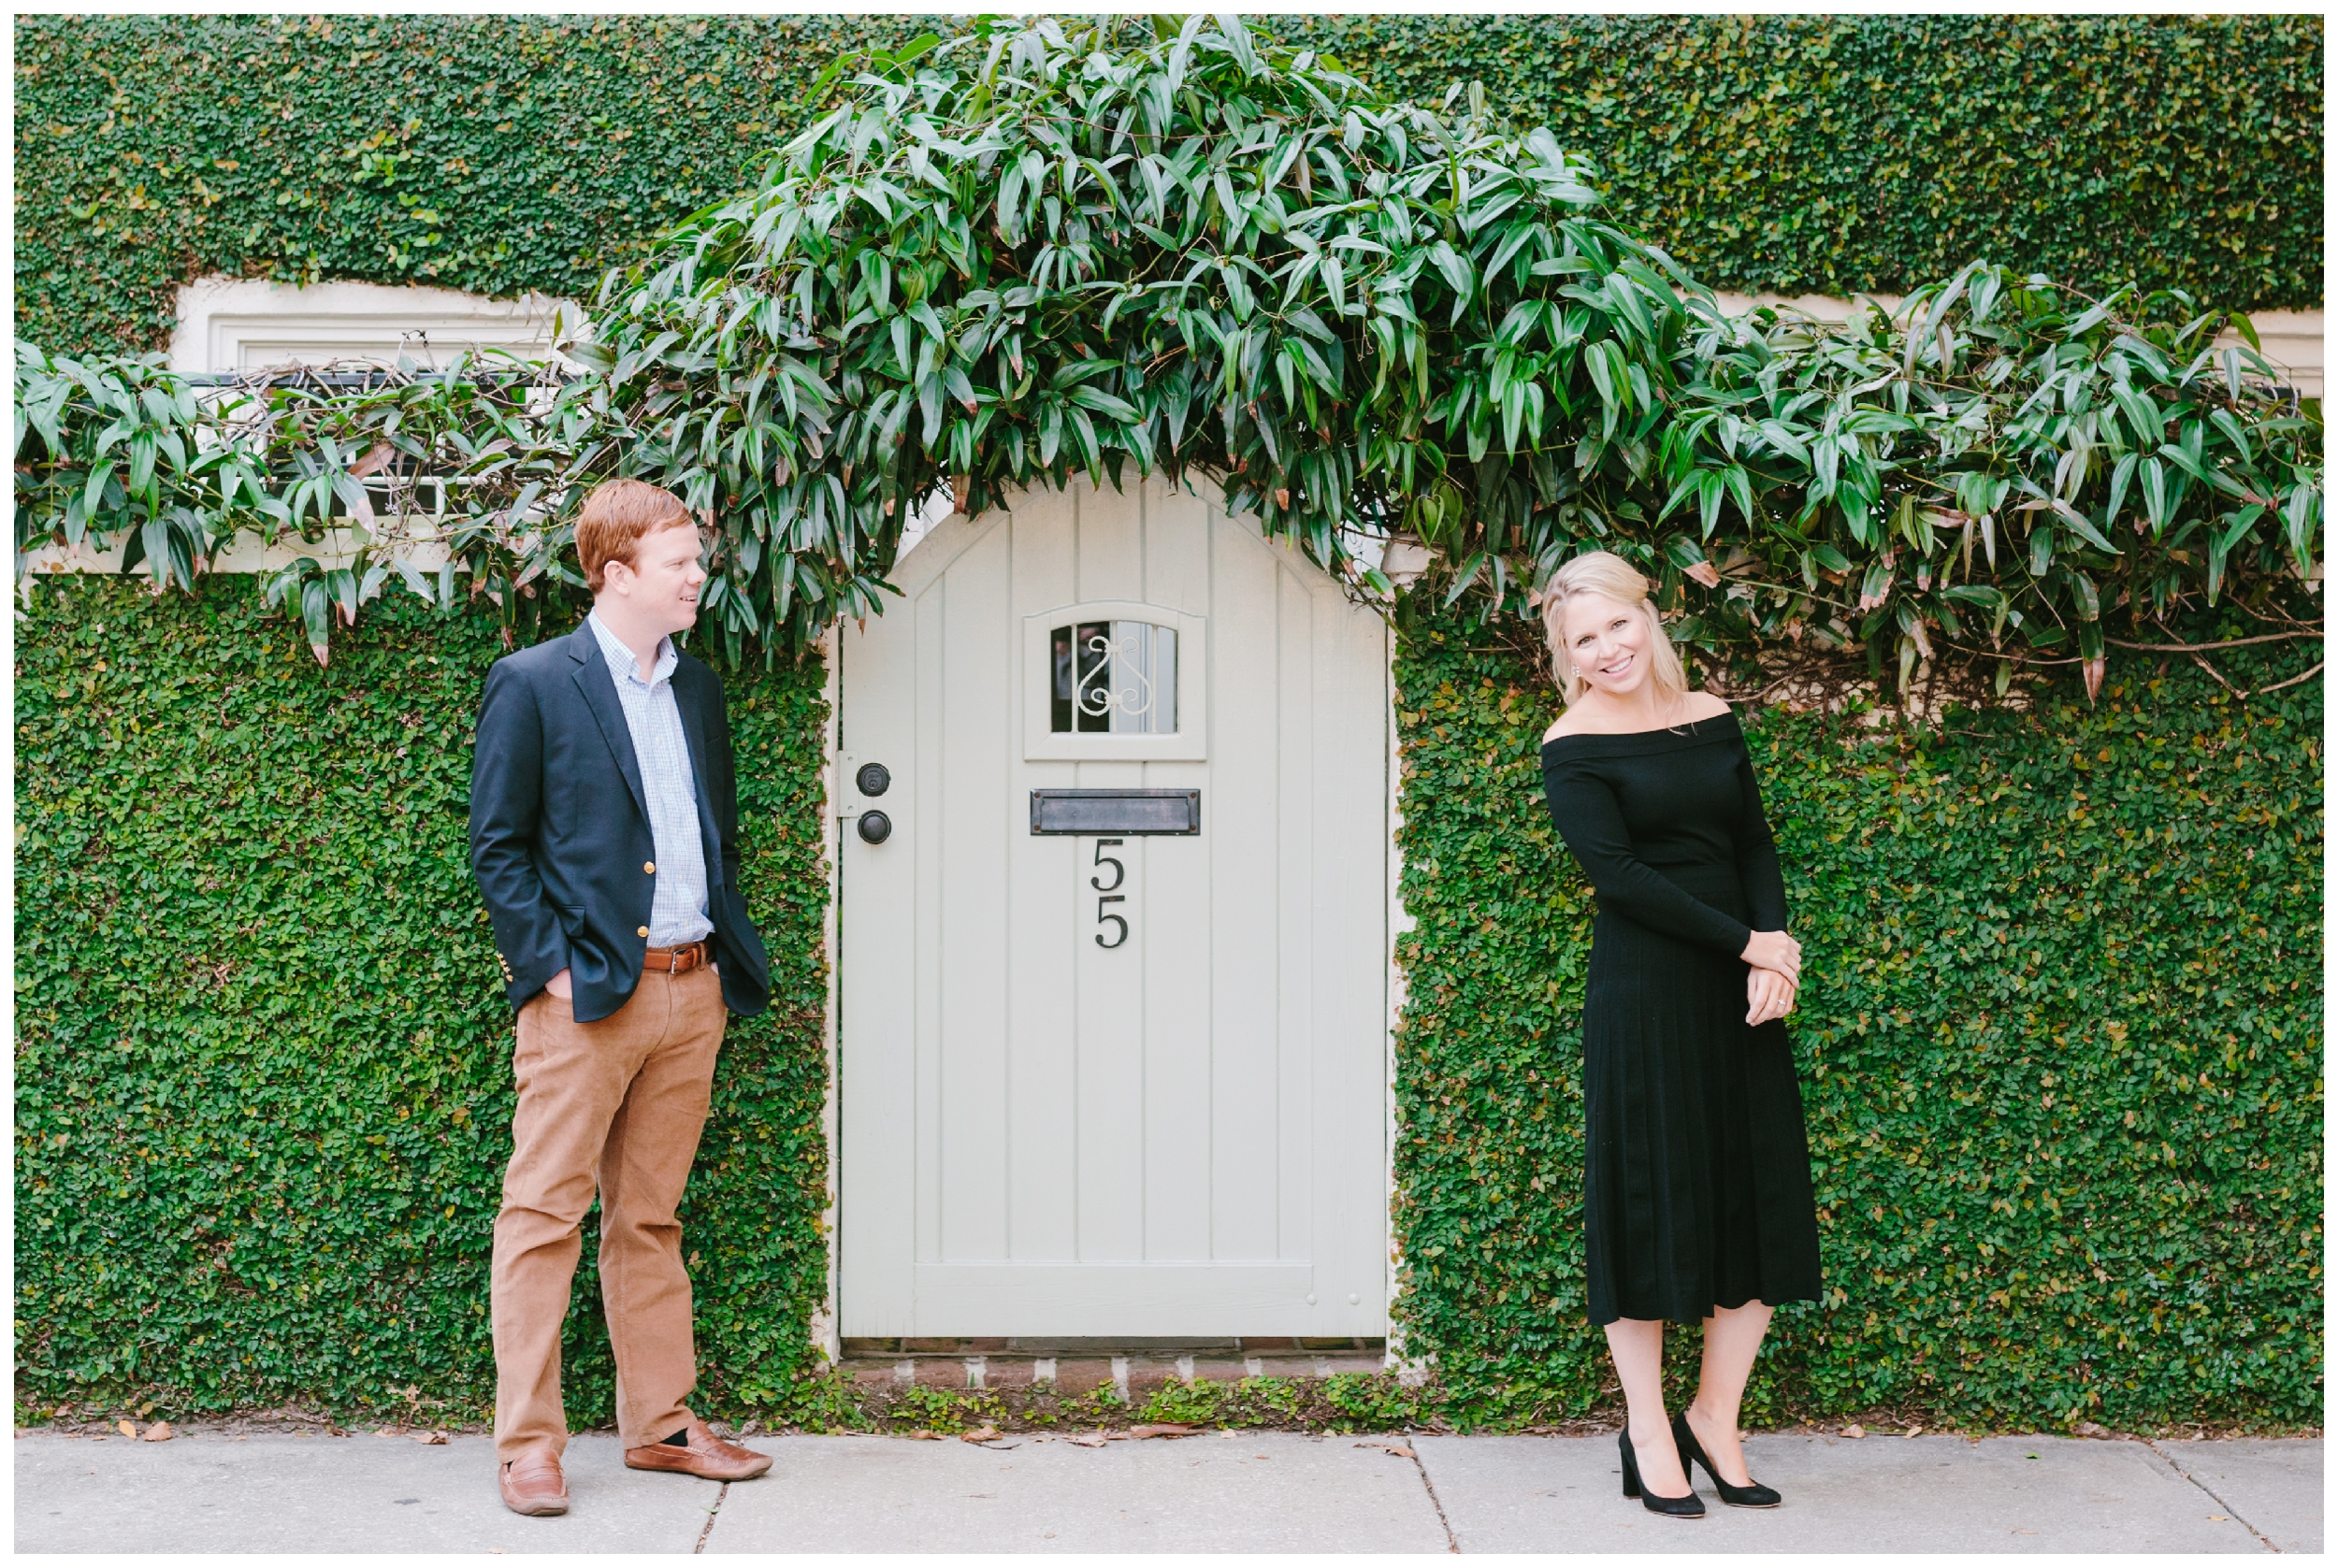 couple standing in front of a green wall